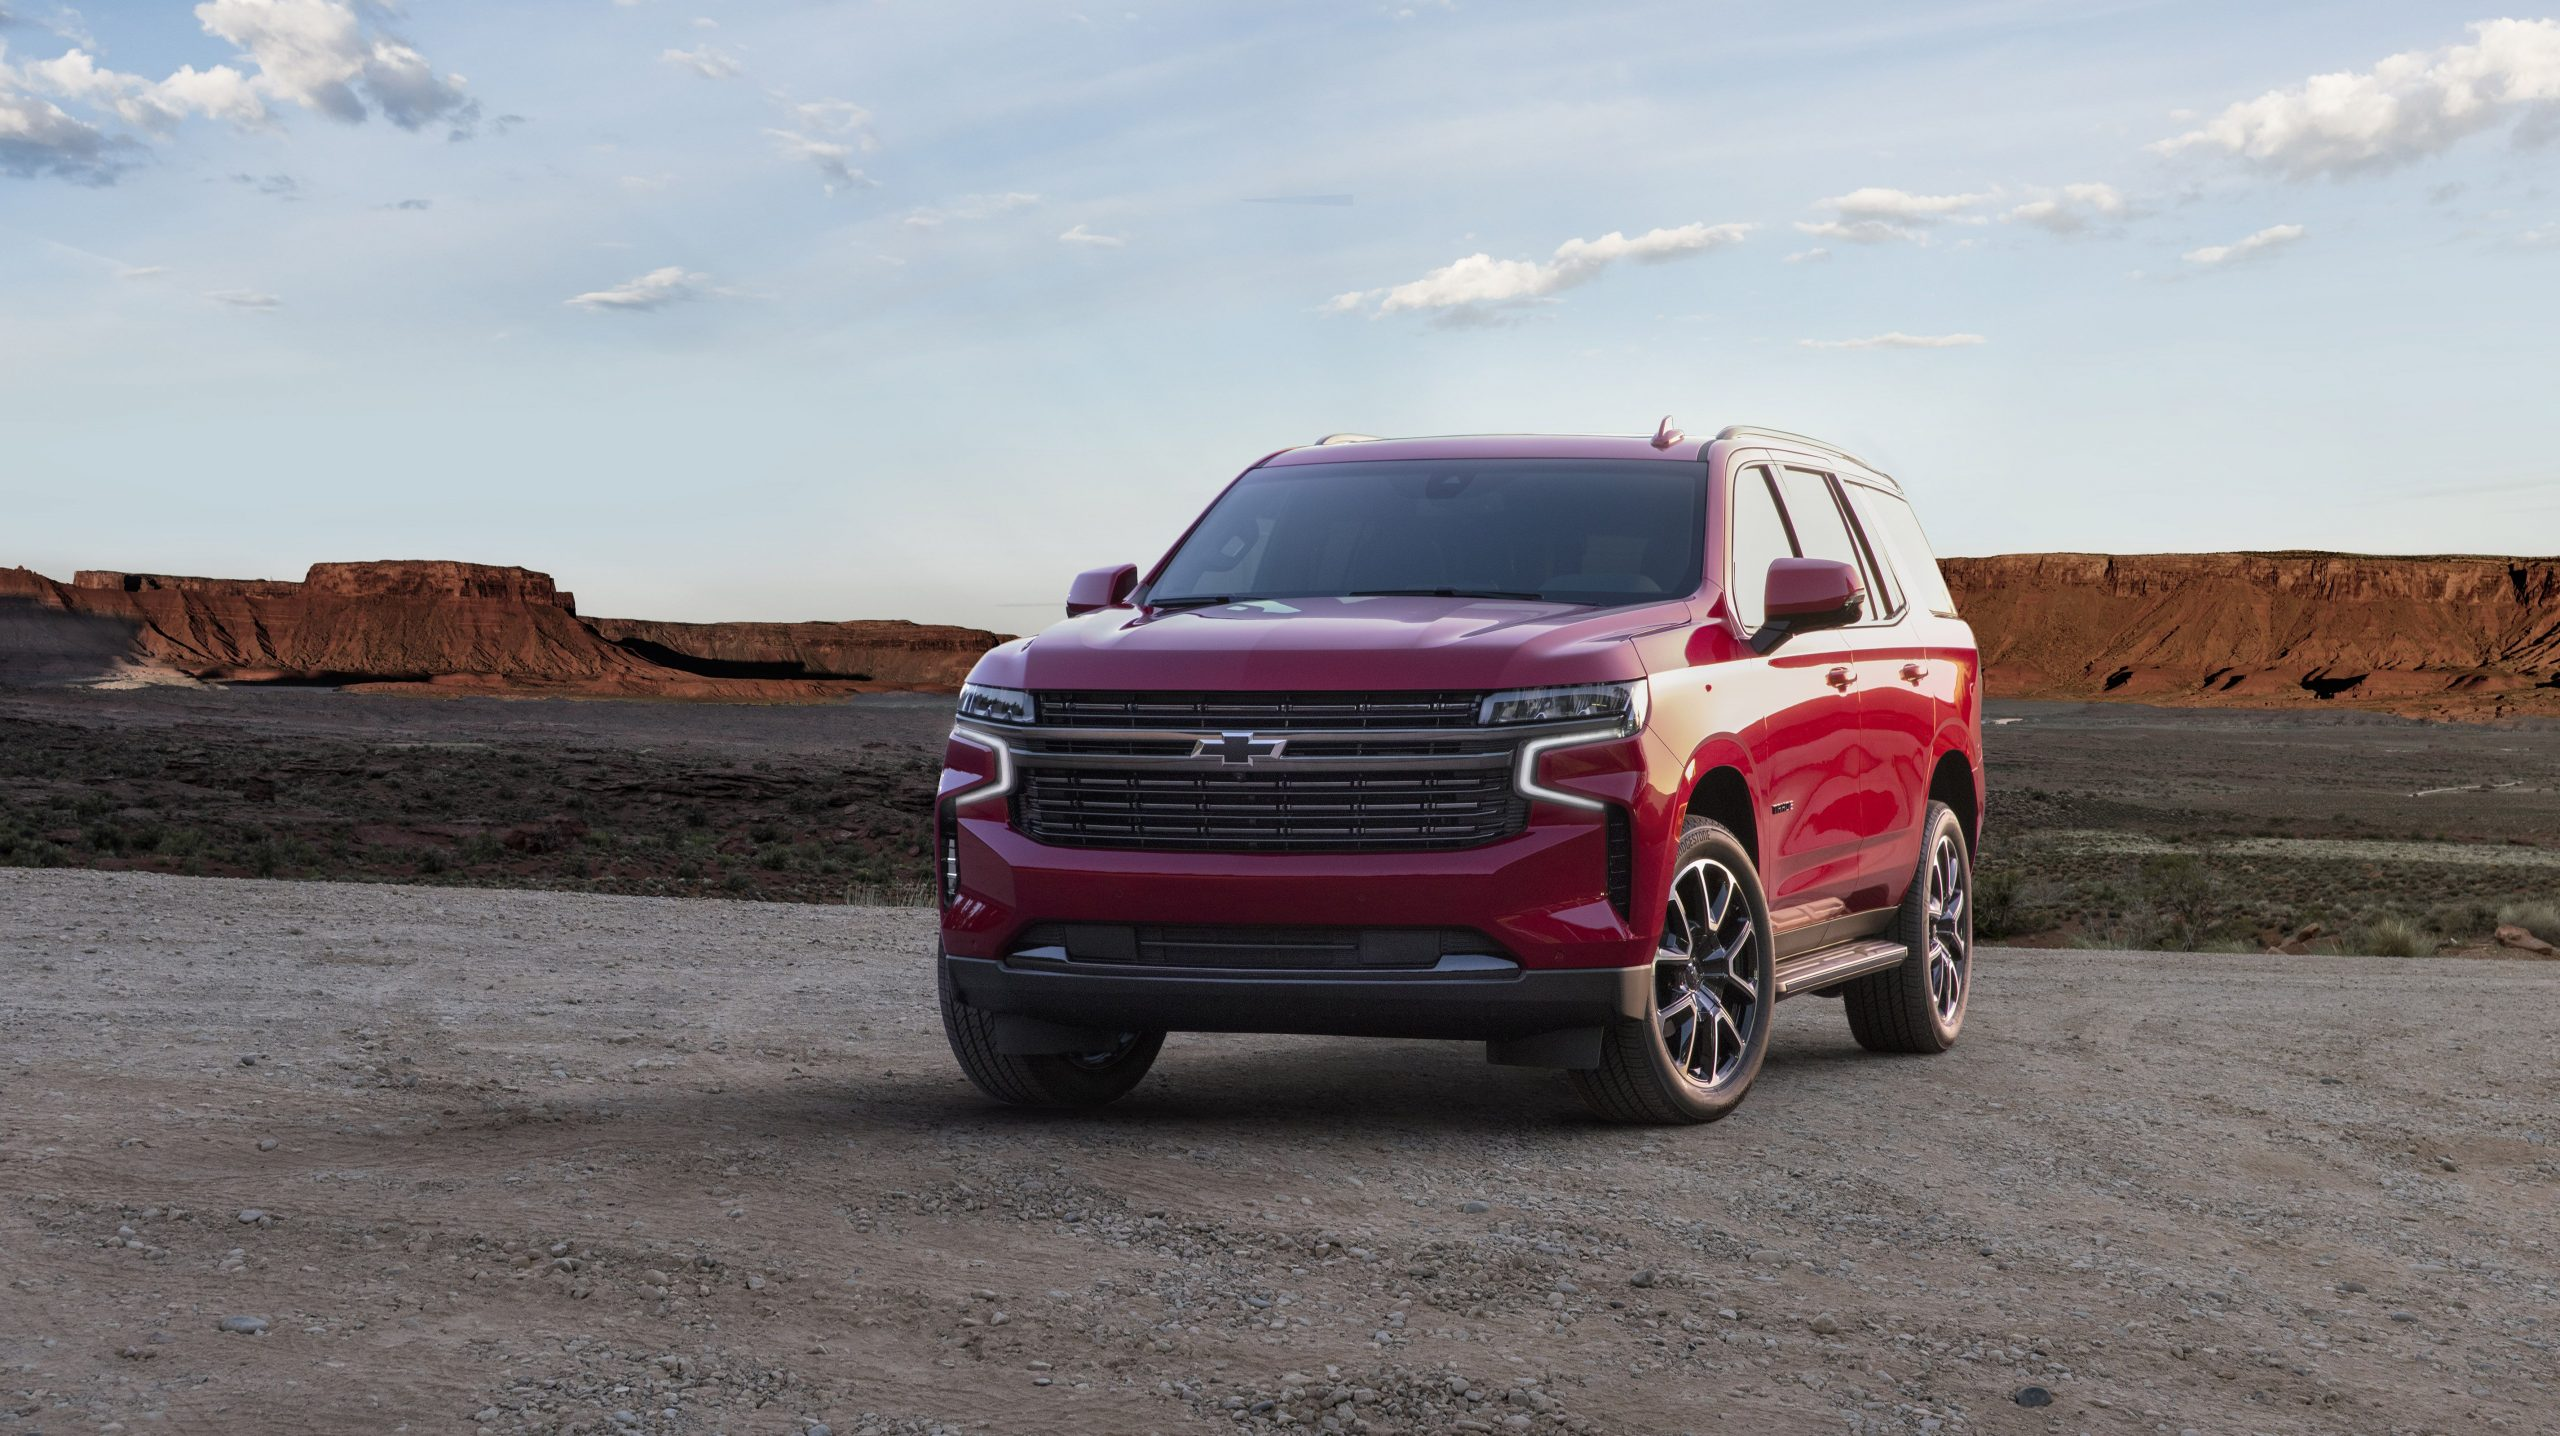 2021 Chevrolet Tahoe: What We Know So Far 2021 Chevrolet Tahoe Lt Towing Capacity, Build, Lease Deals